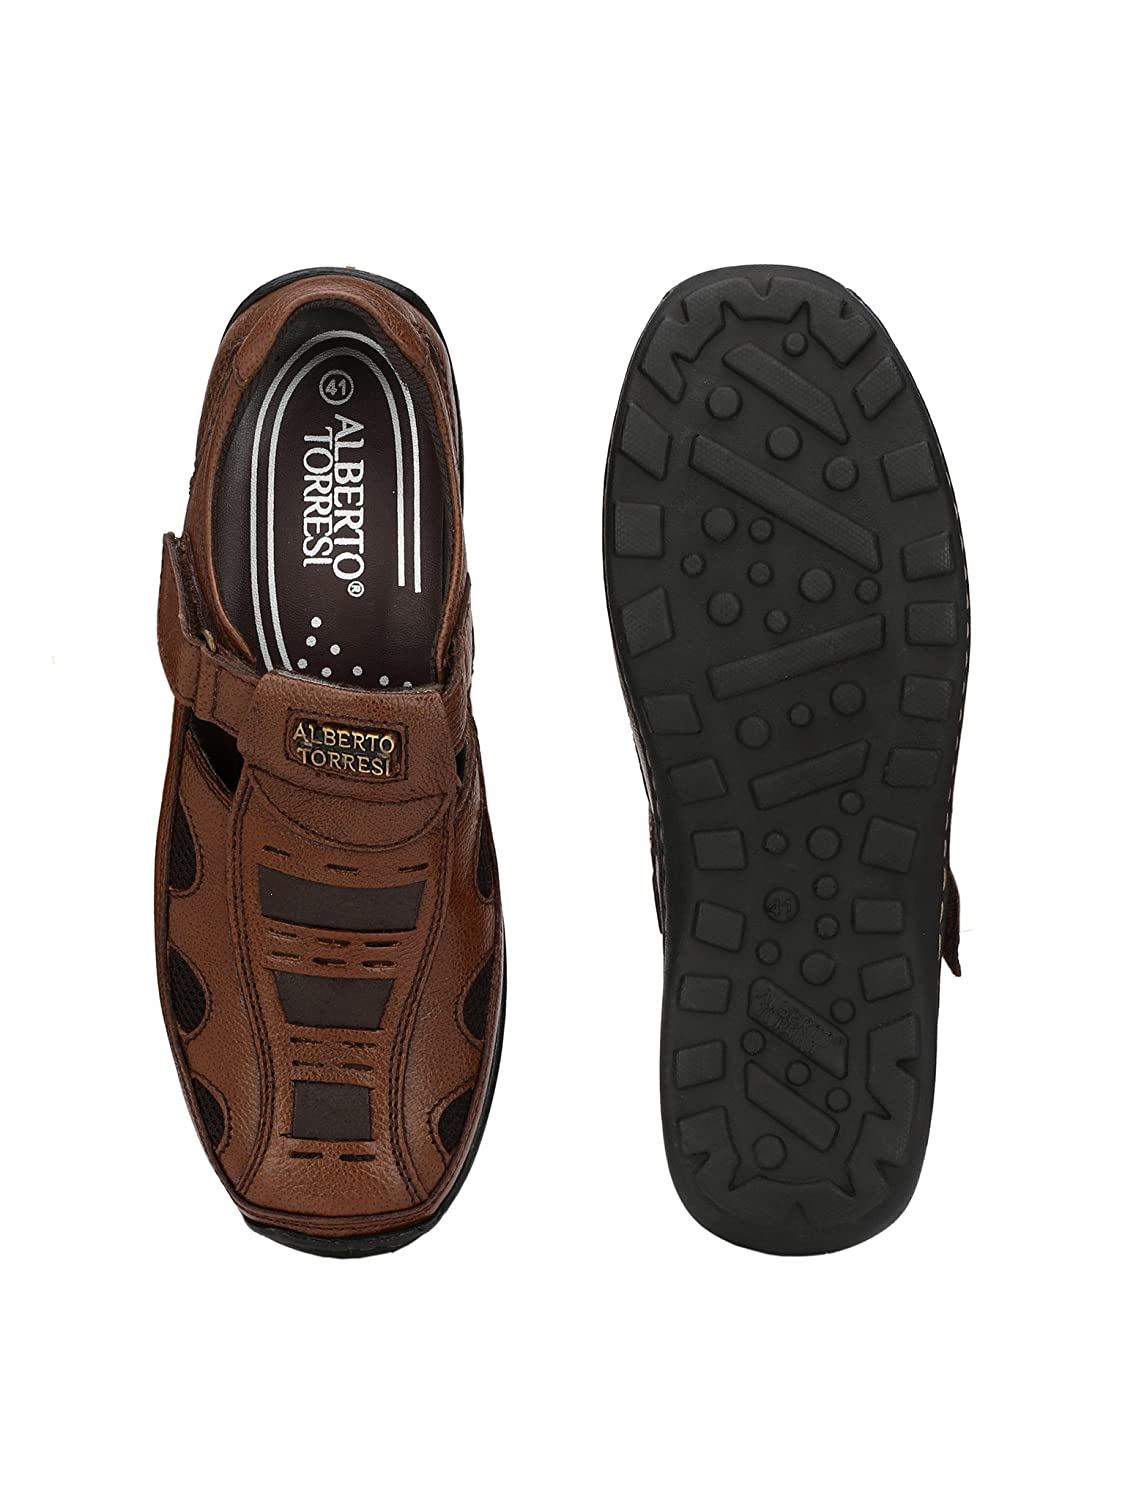 6cf0fc2eb Alberto Torresi Antonio Brown Sandals  Buy Online at Low Prices in India -  Amazon.in